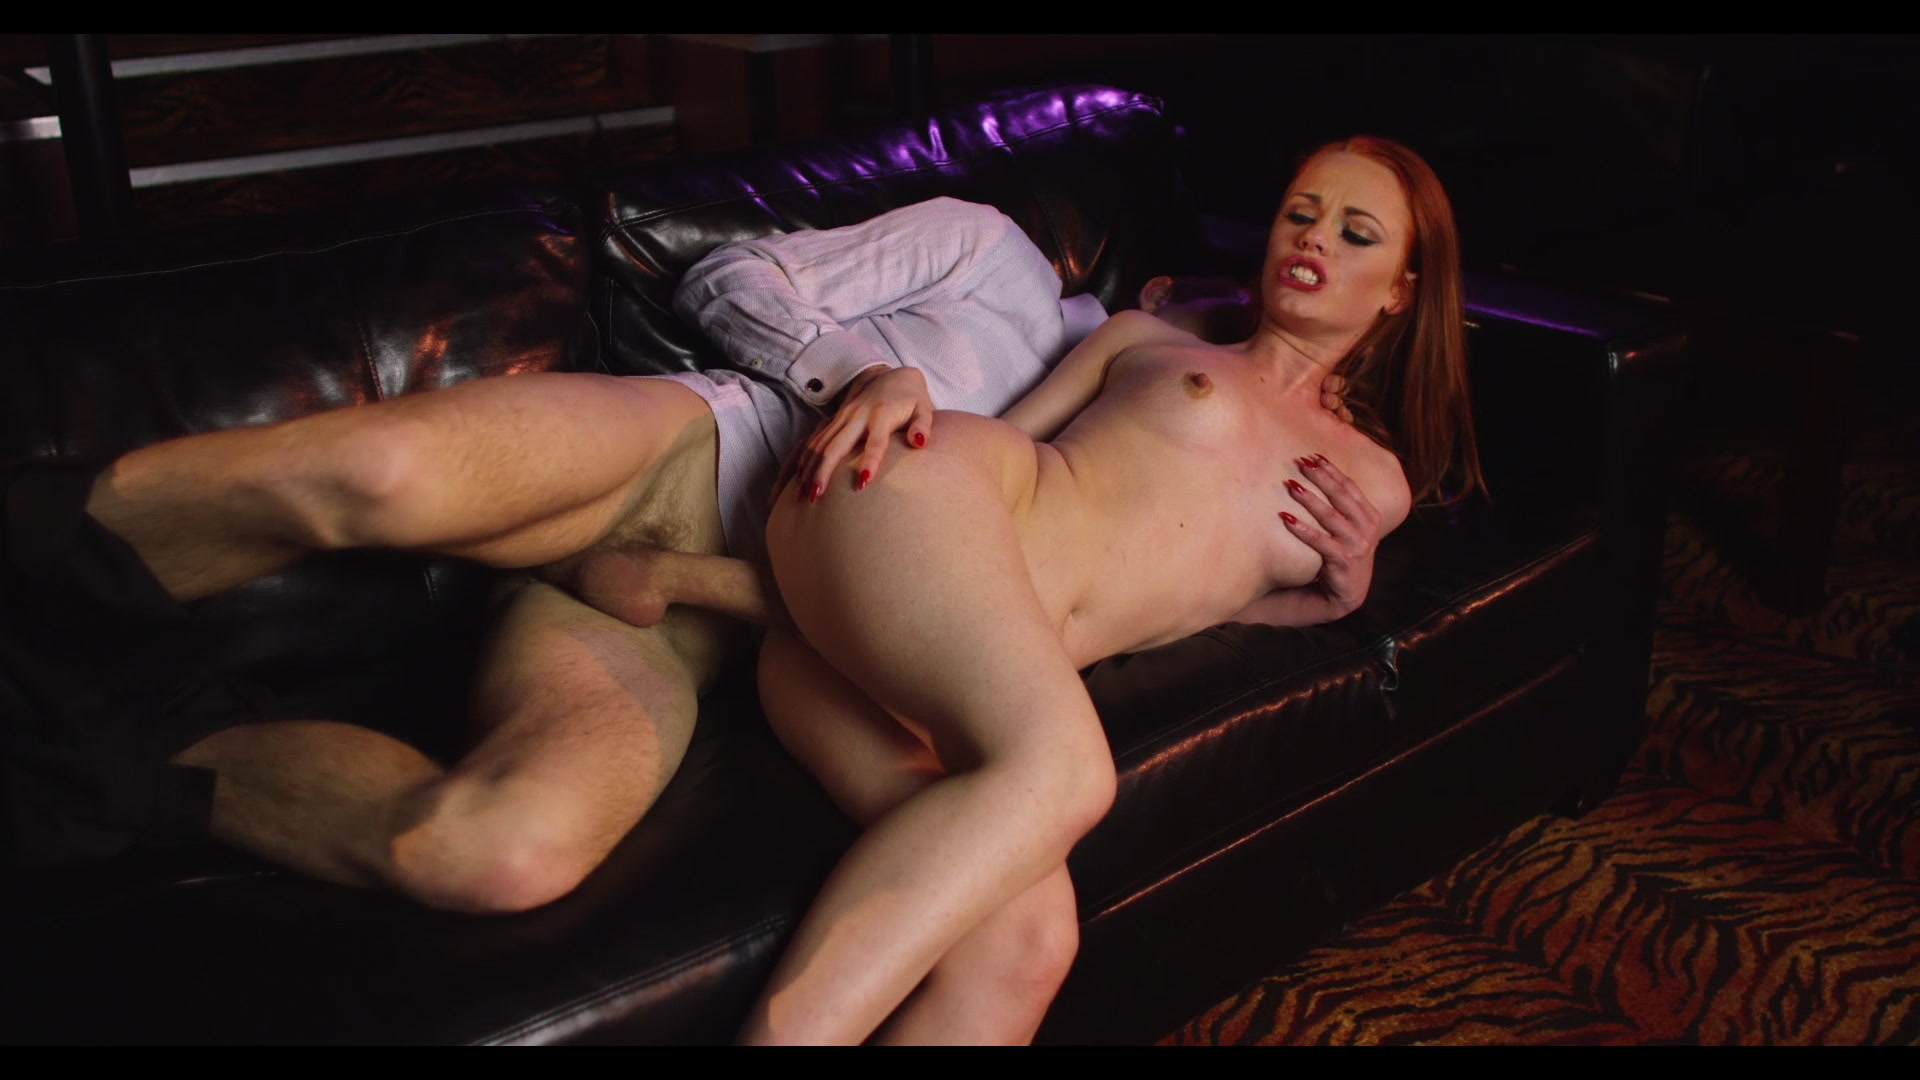 Scene with Ella Hughes - image 18 out of 20